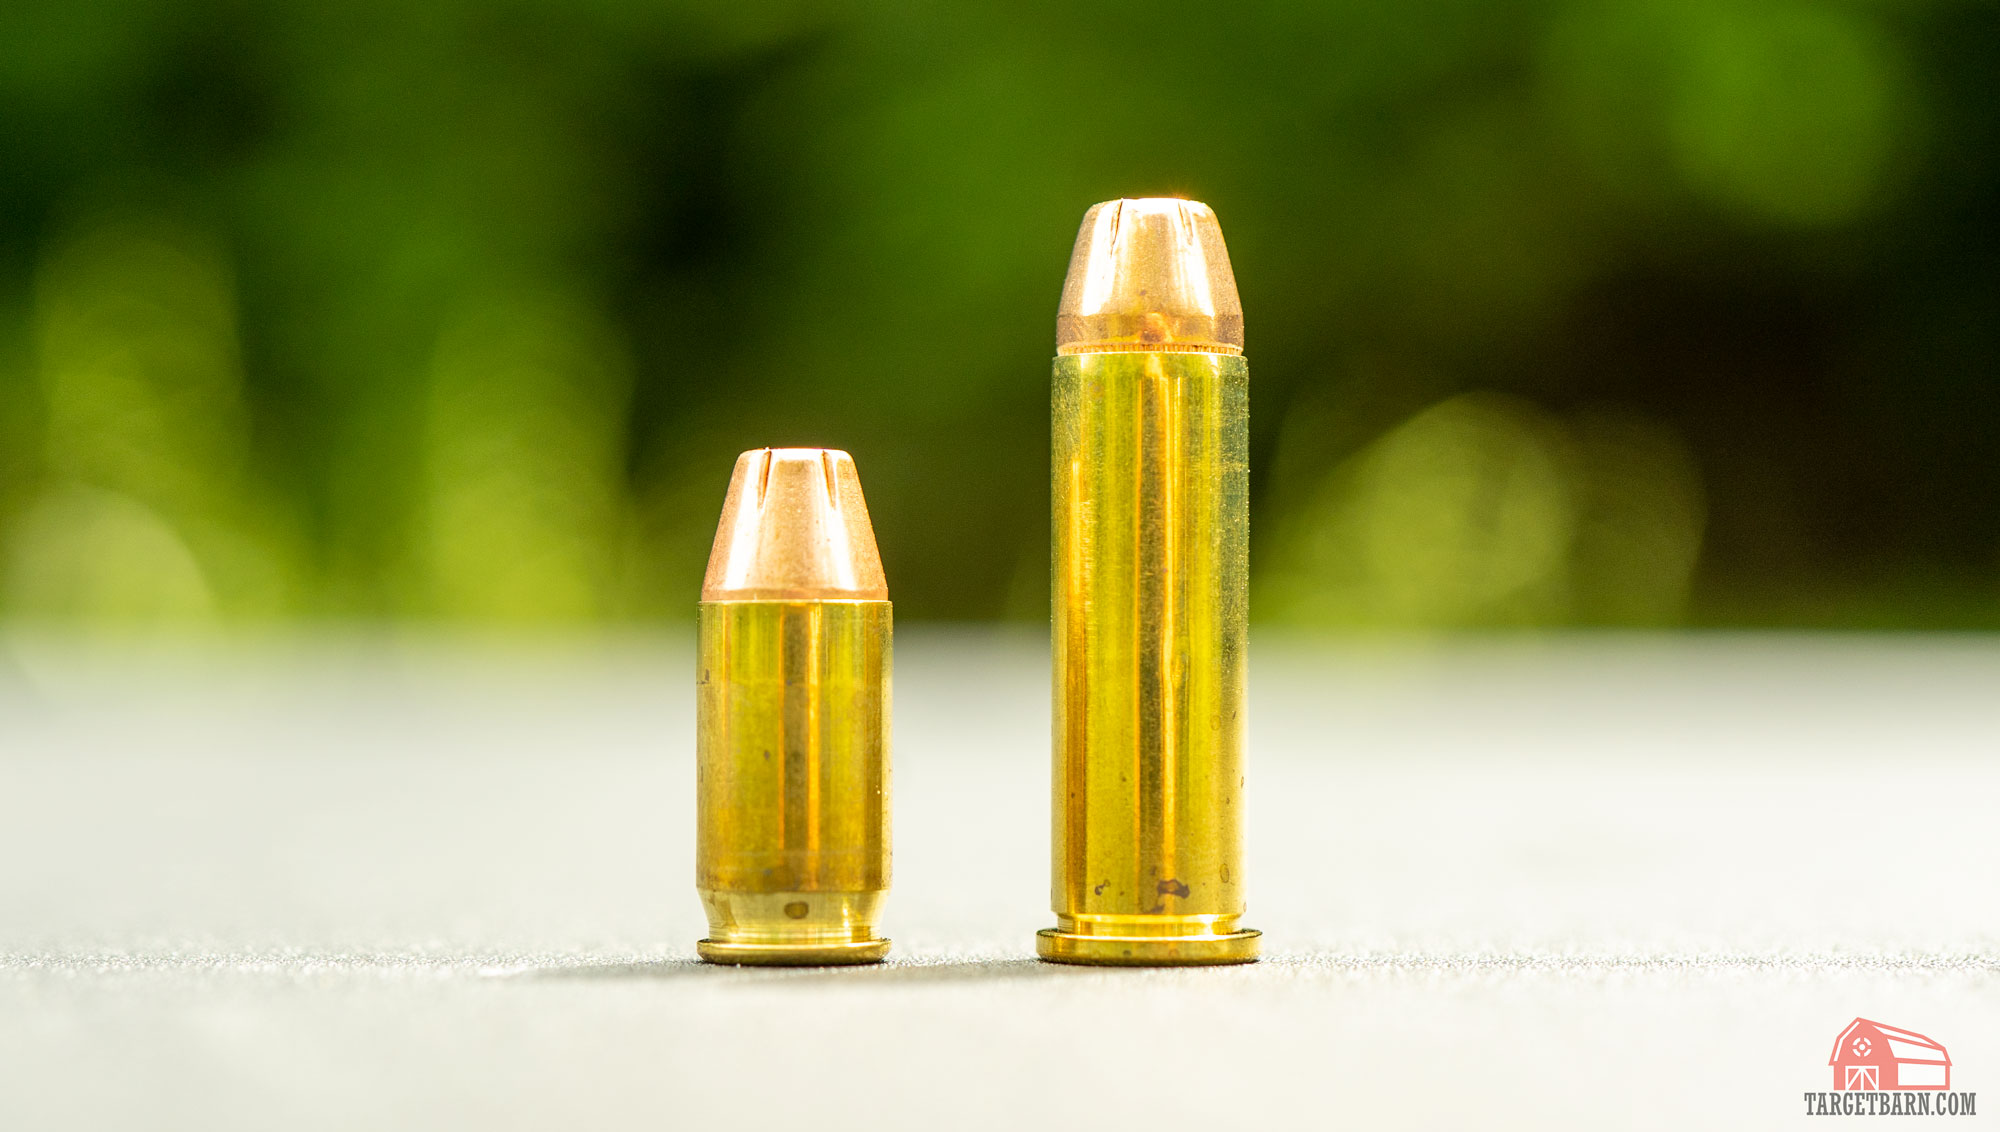 a .380 round next to a .38 special round